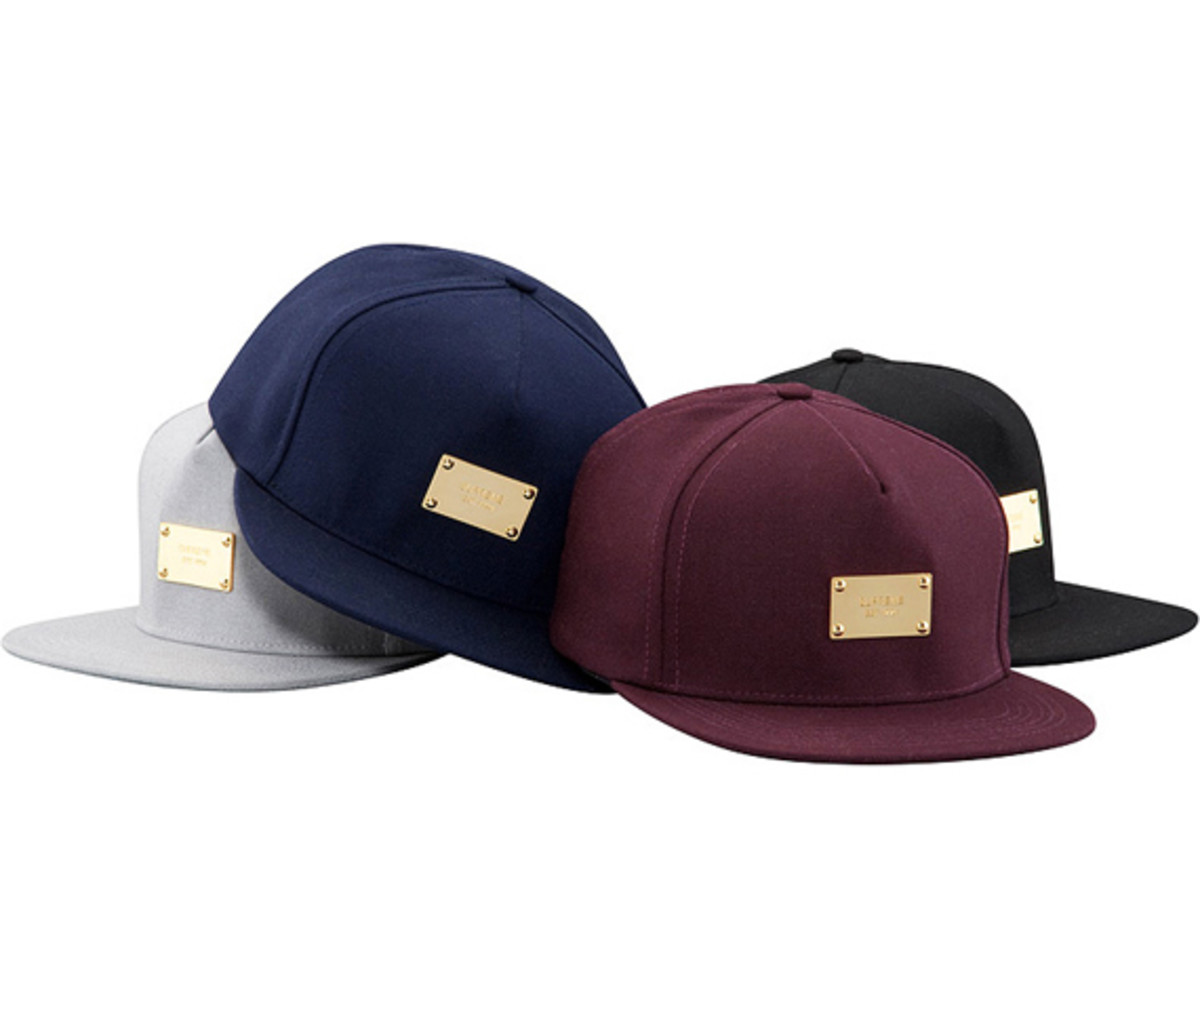 4cb6892320d Supreme - Spring Summer 2010 Collection - Accessories + Hats ...